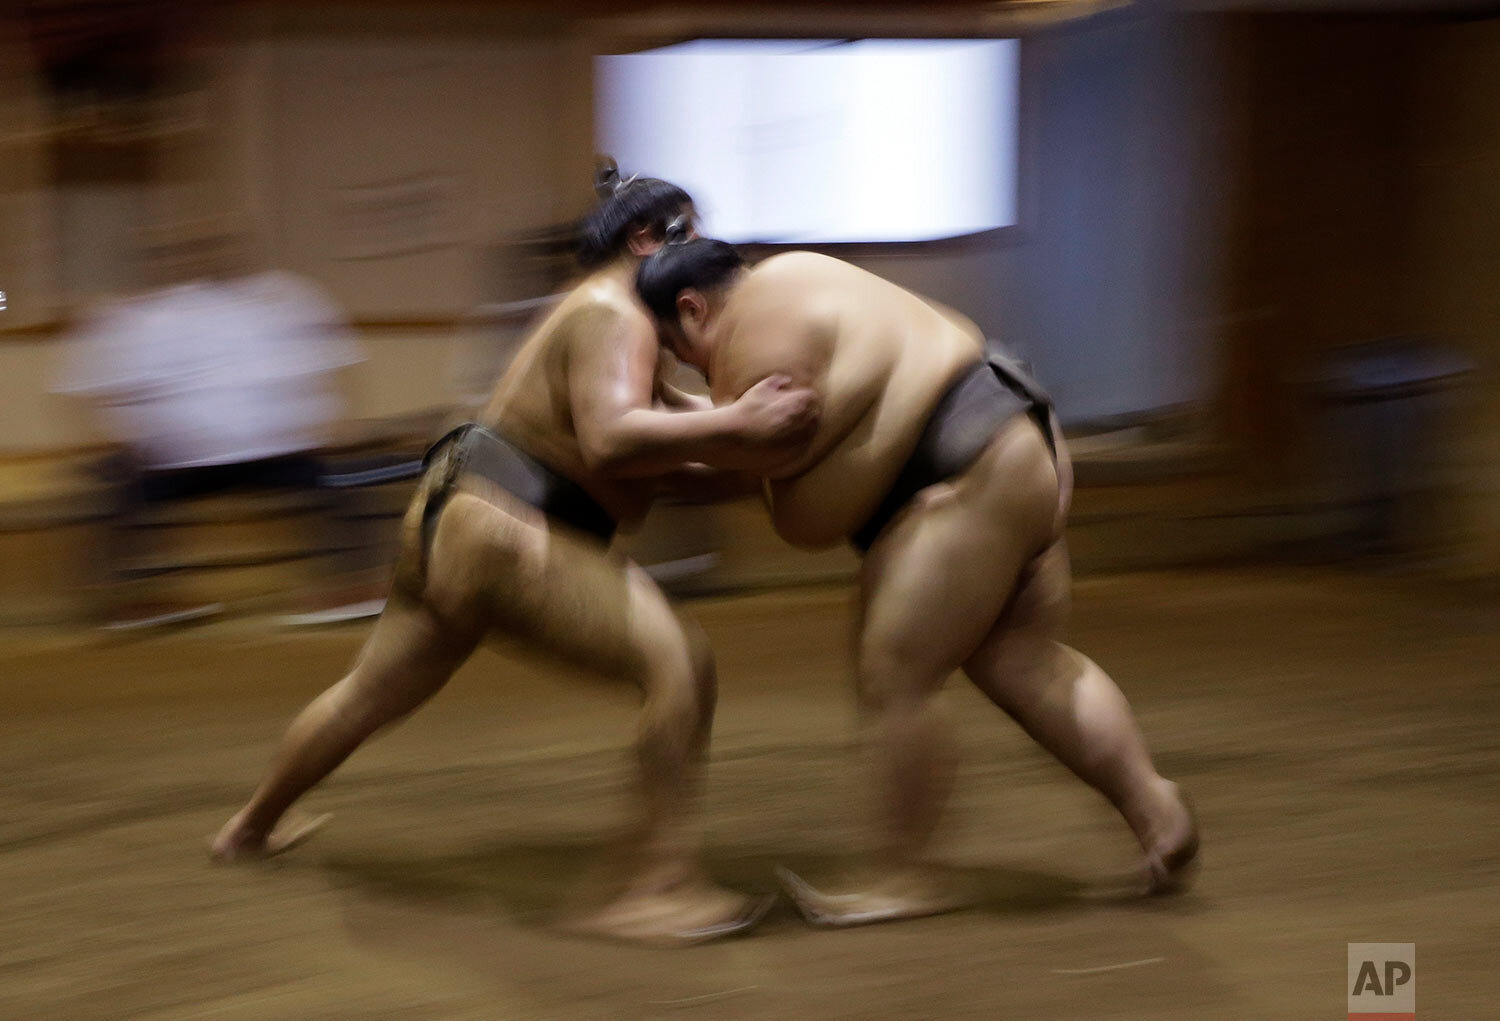 Sumo wrestlers train at the Musashigawa Sumo Stable at Beppu, western Japan on Friday, Oct. 18, 2019. Sumo wrestling is a traditional Japanese sport. (AP Photo/Aaron Favila)